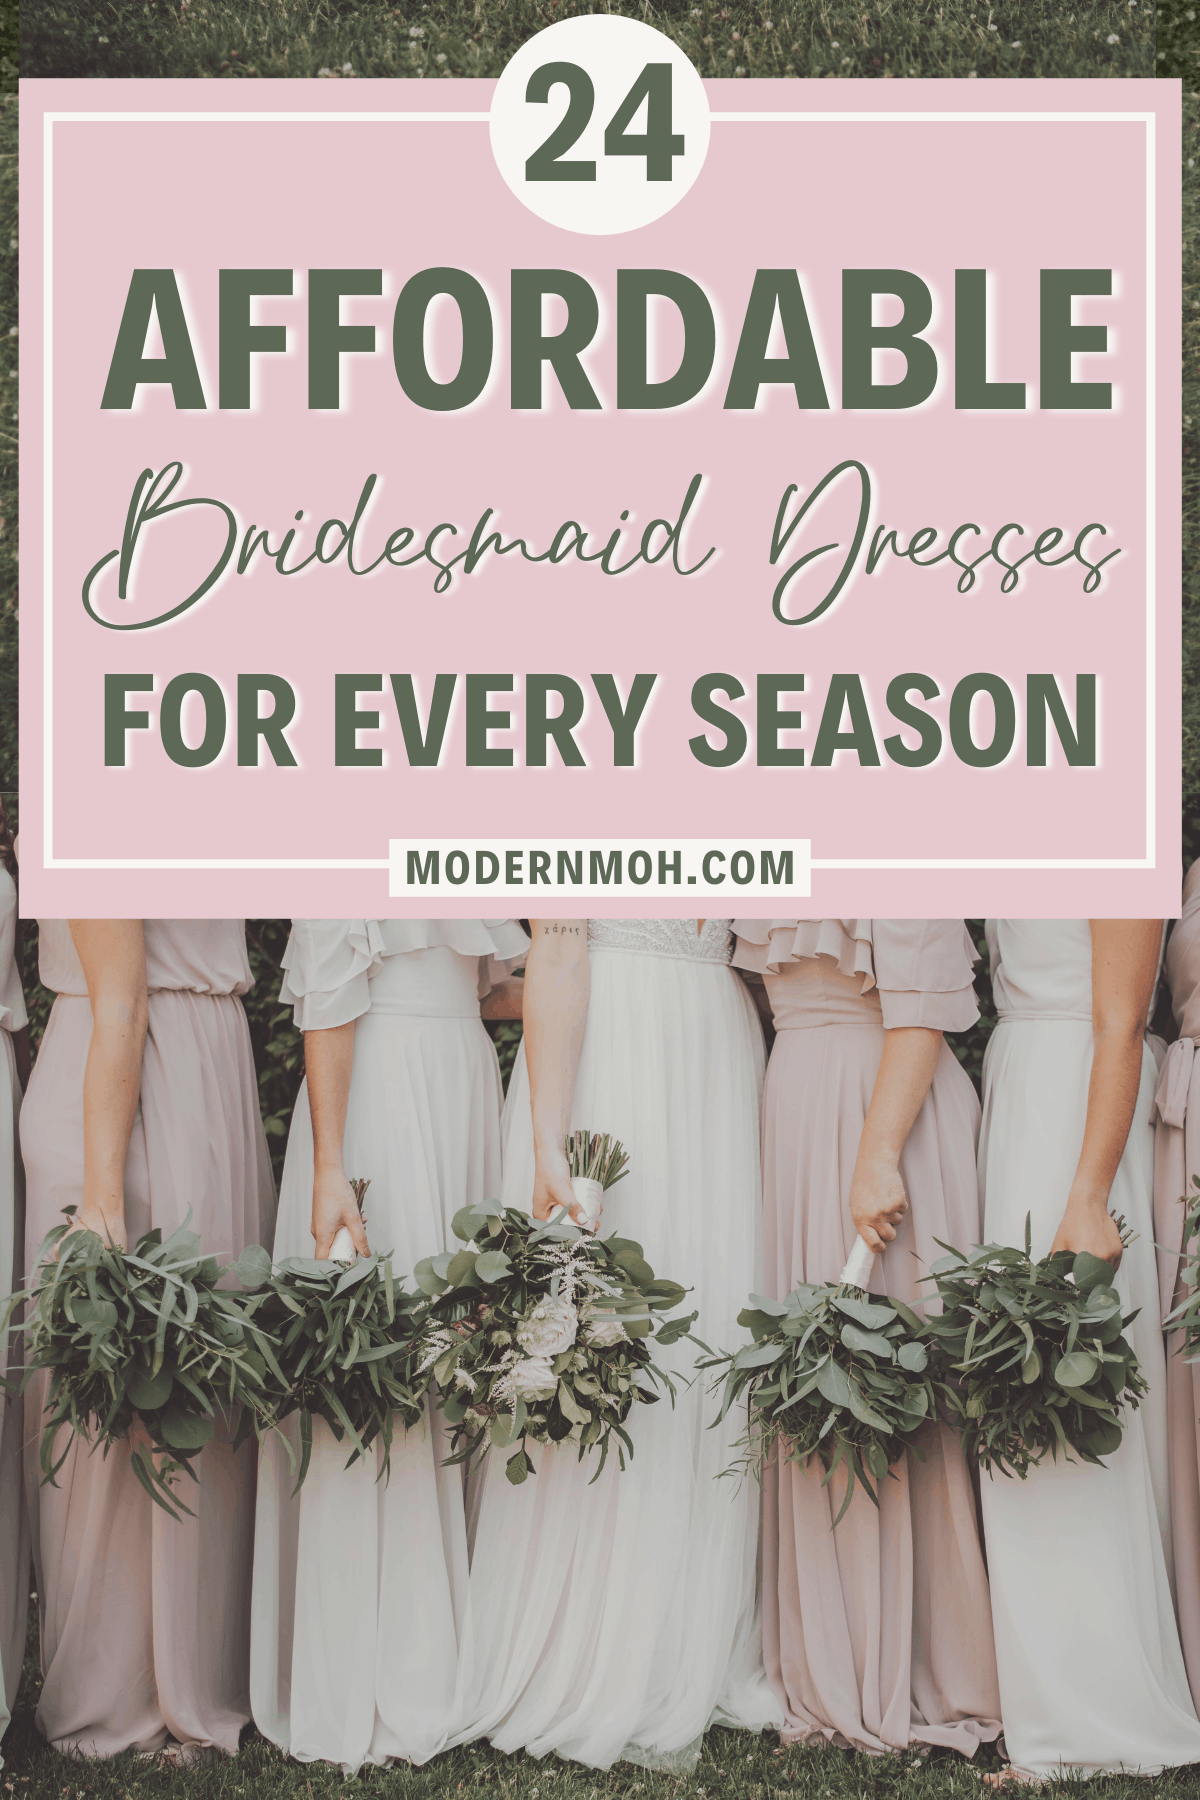 24 Affordable Bridesmaid Dresses for Every Season